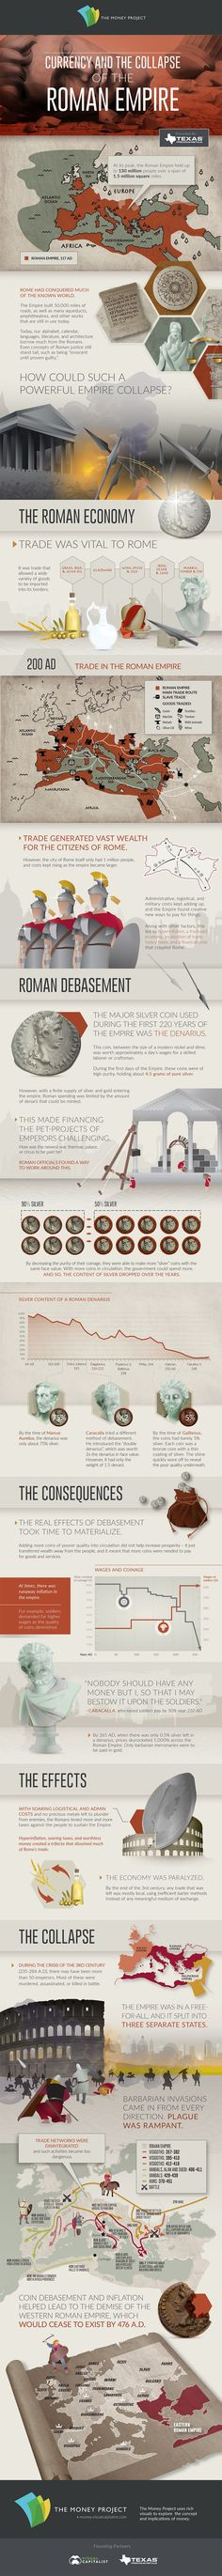 Currency And The Collapse Of The Roman Empire | Zero Hedge #thibaultGond